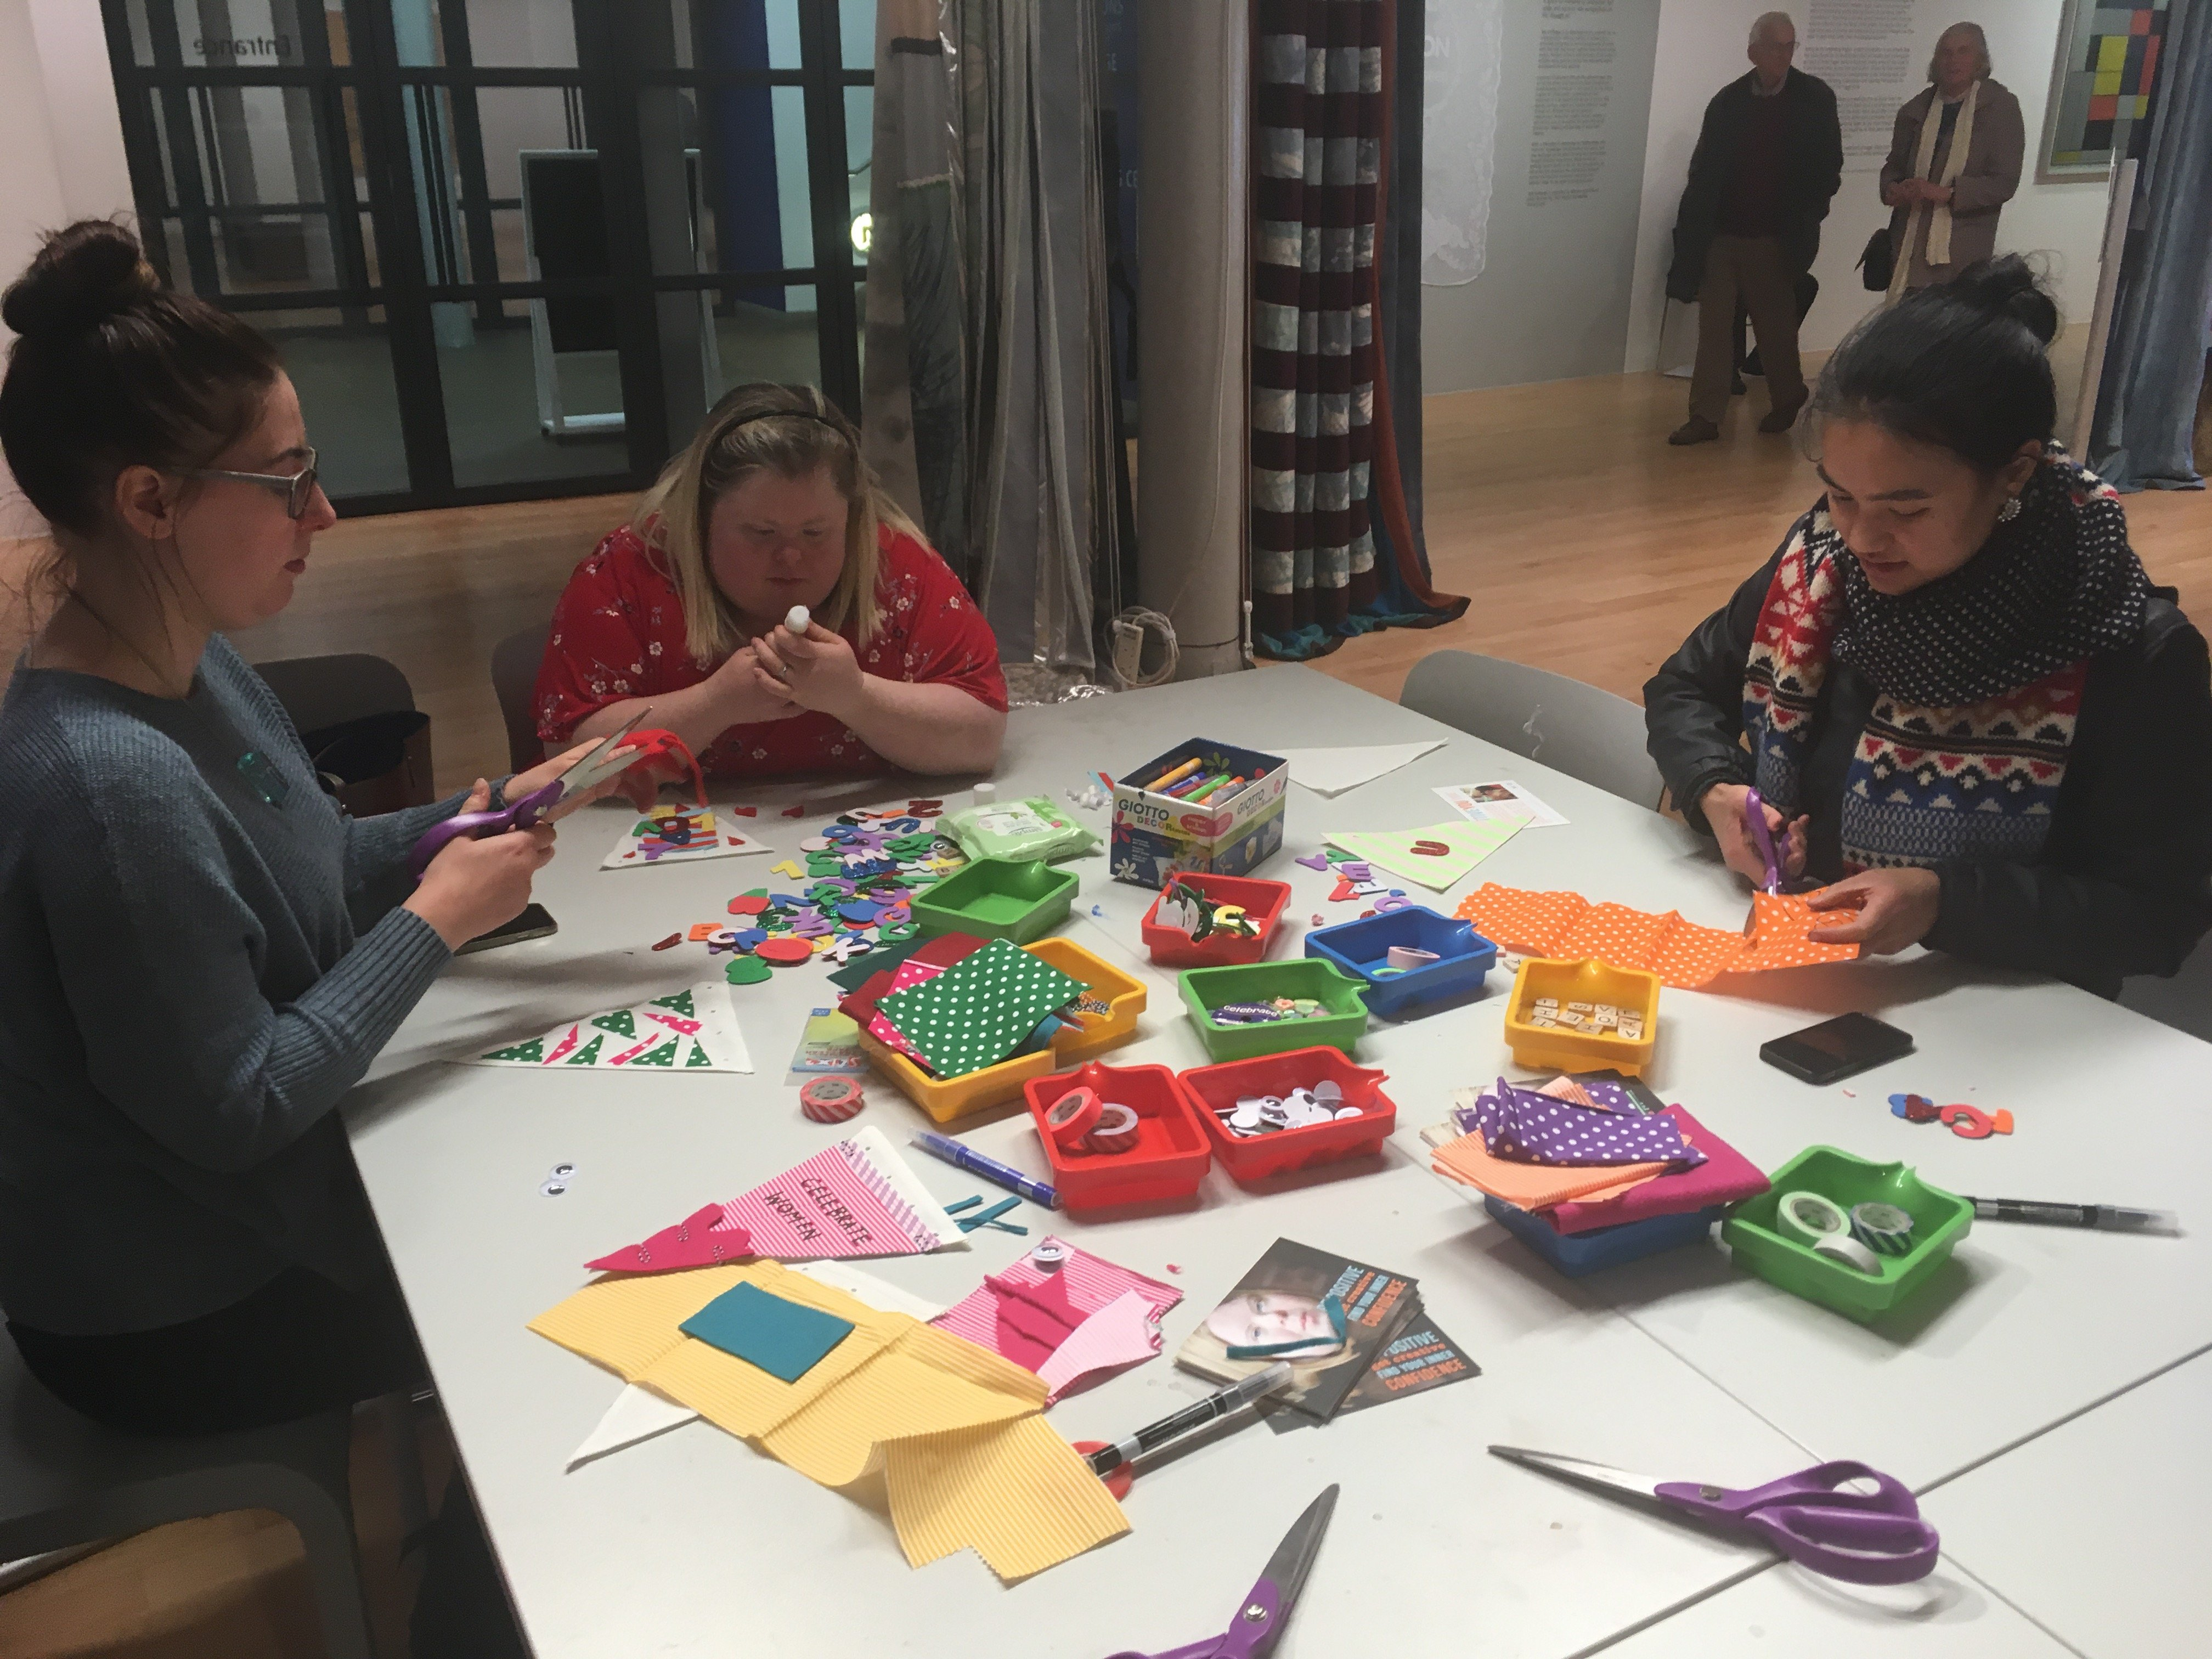 Positive You Workshop at Tate Exchange 2017